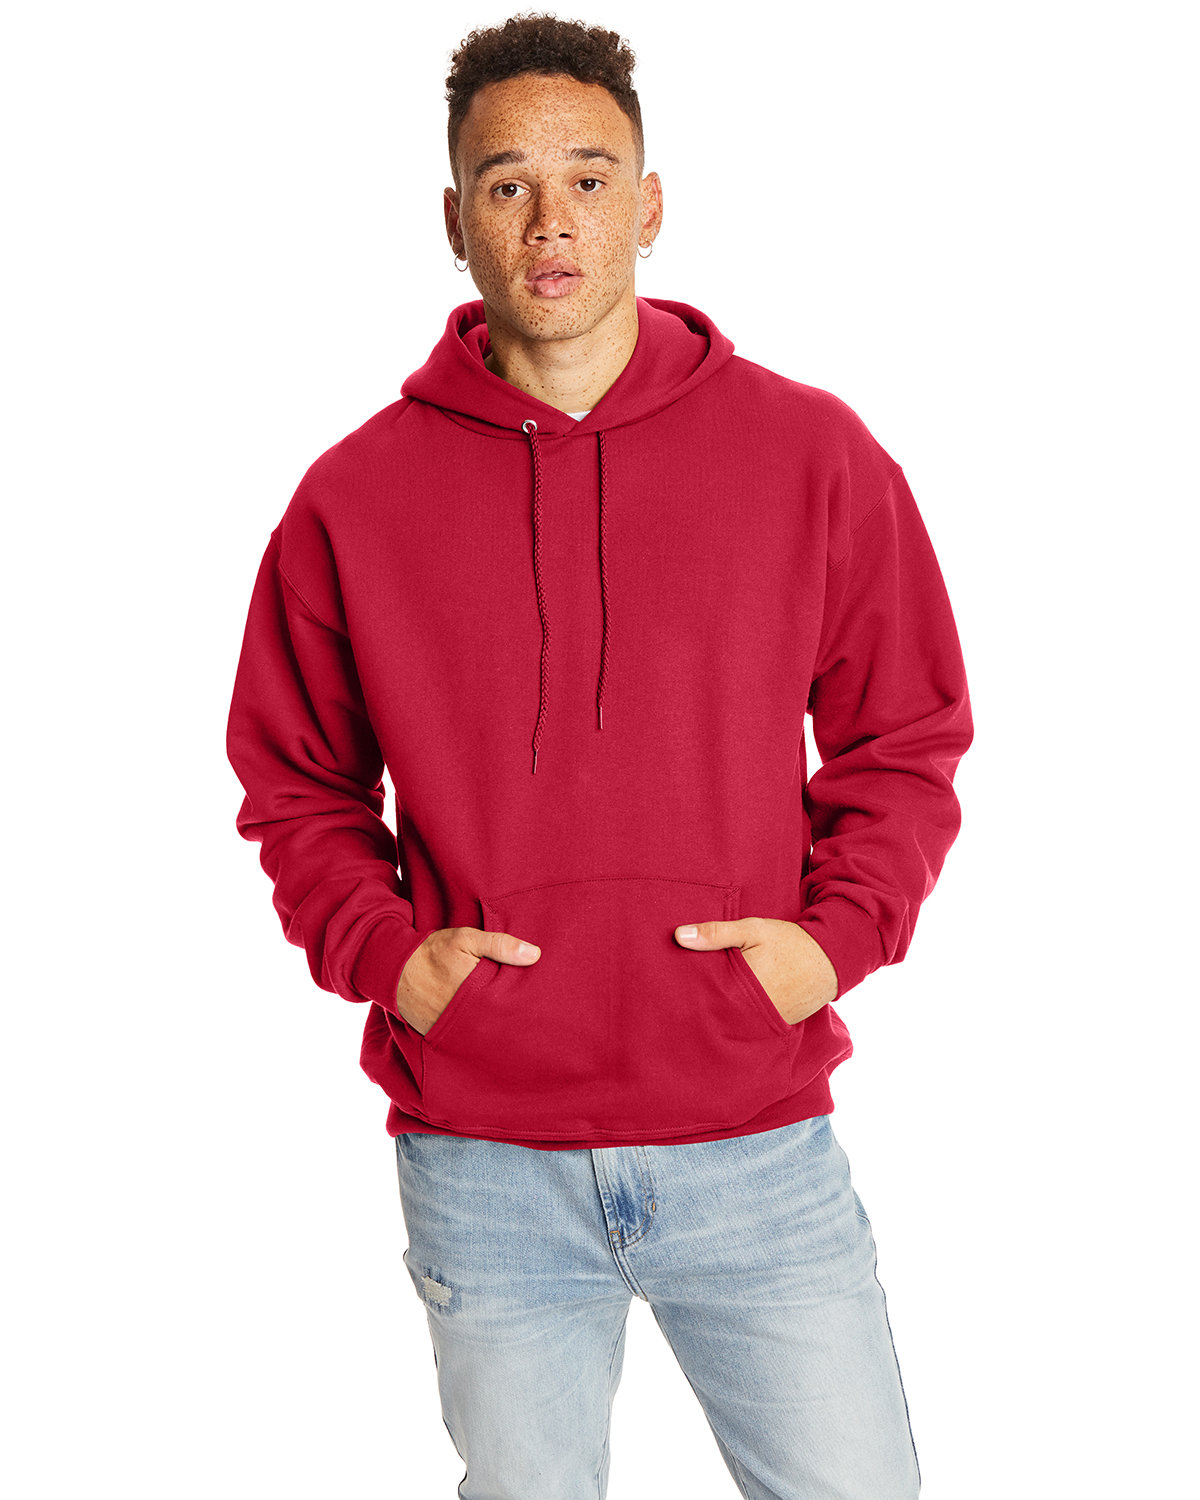 Hanes Adult Ultimate Cotton® 90/10 Pullover Hooded Sweatshirt DEEP RED